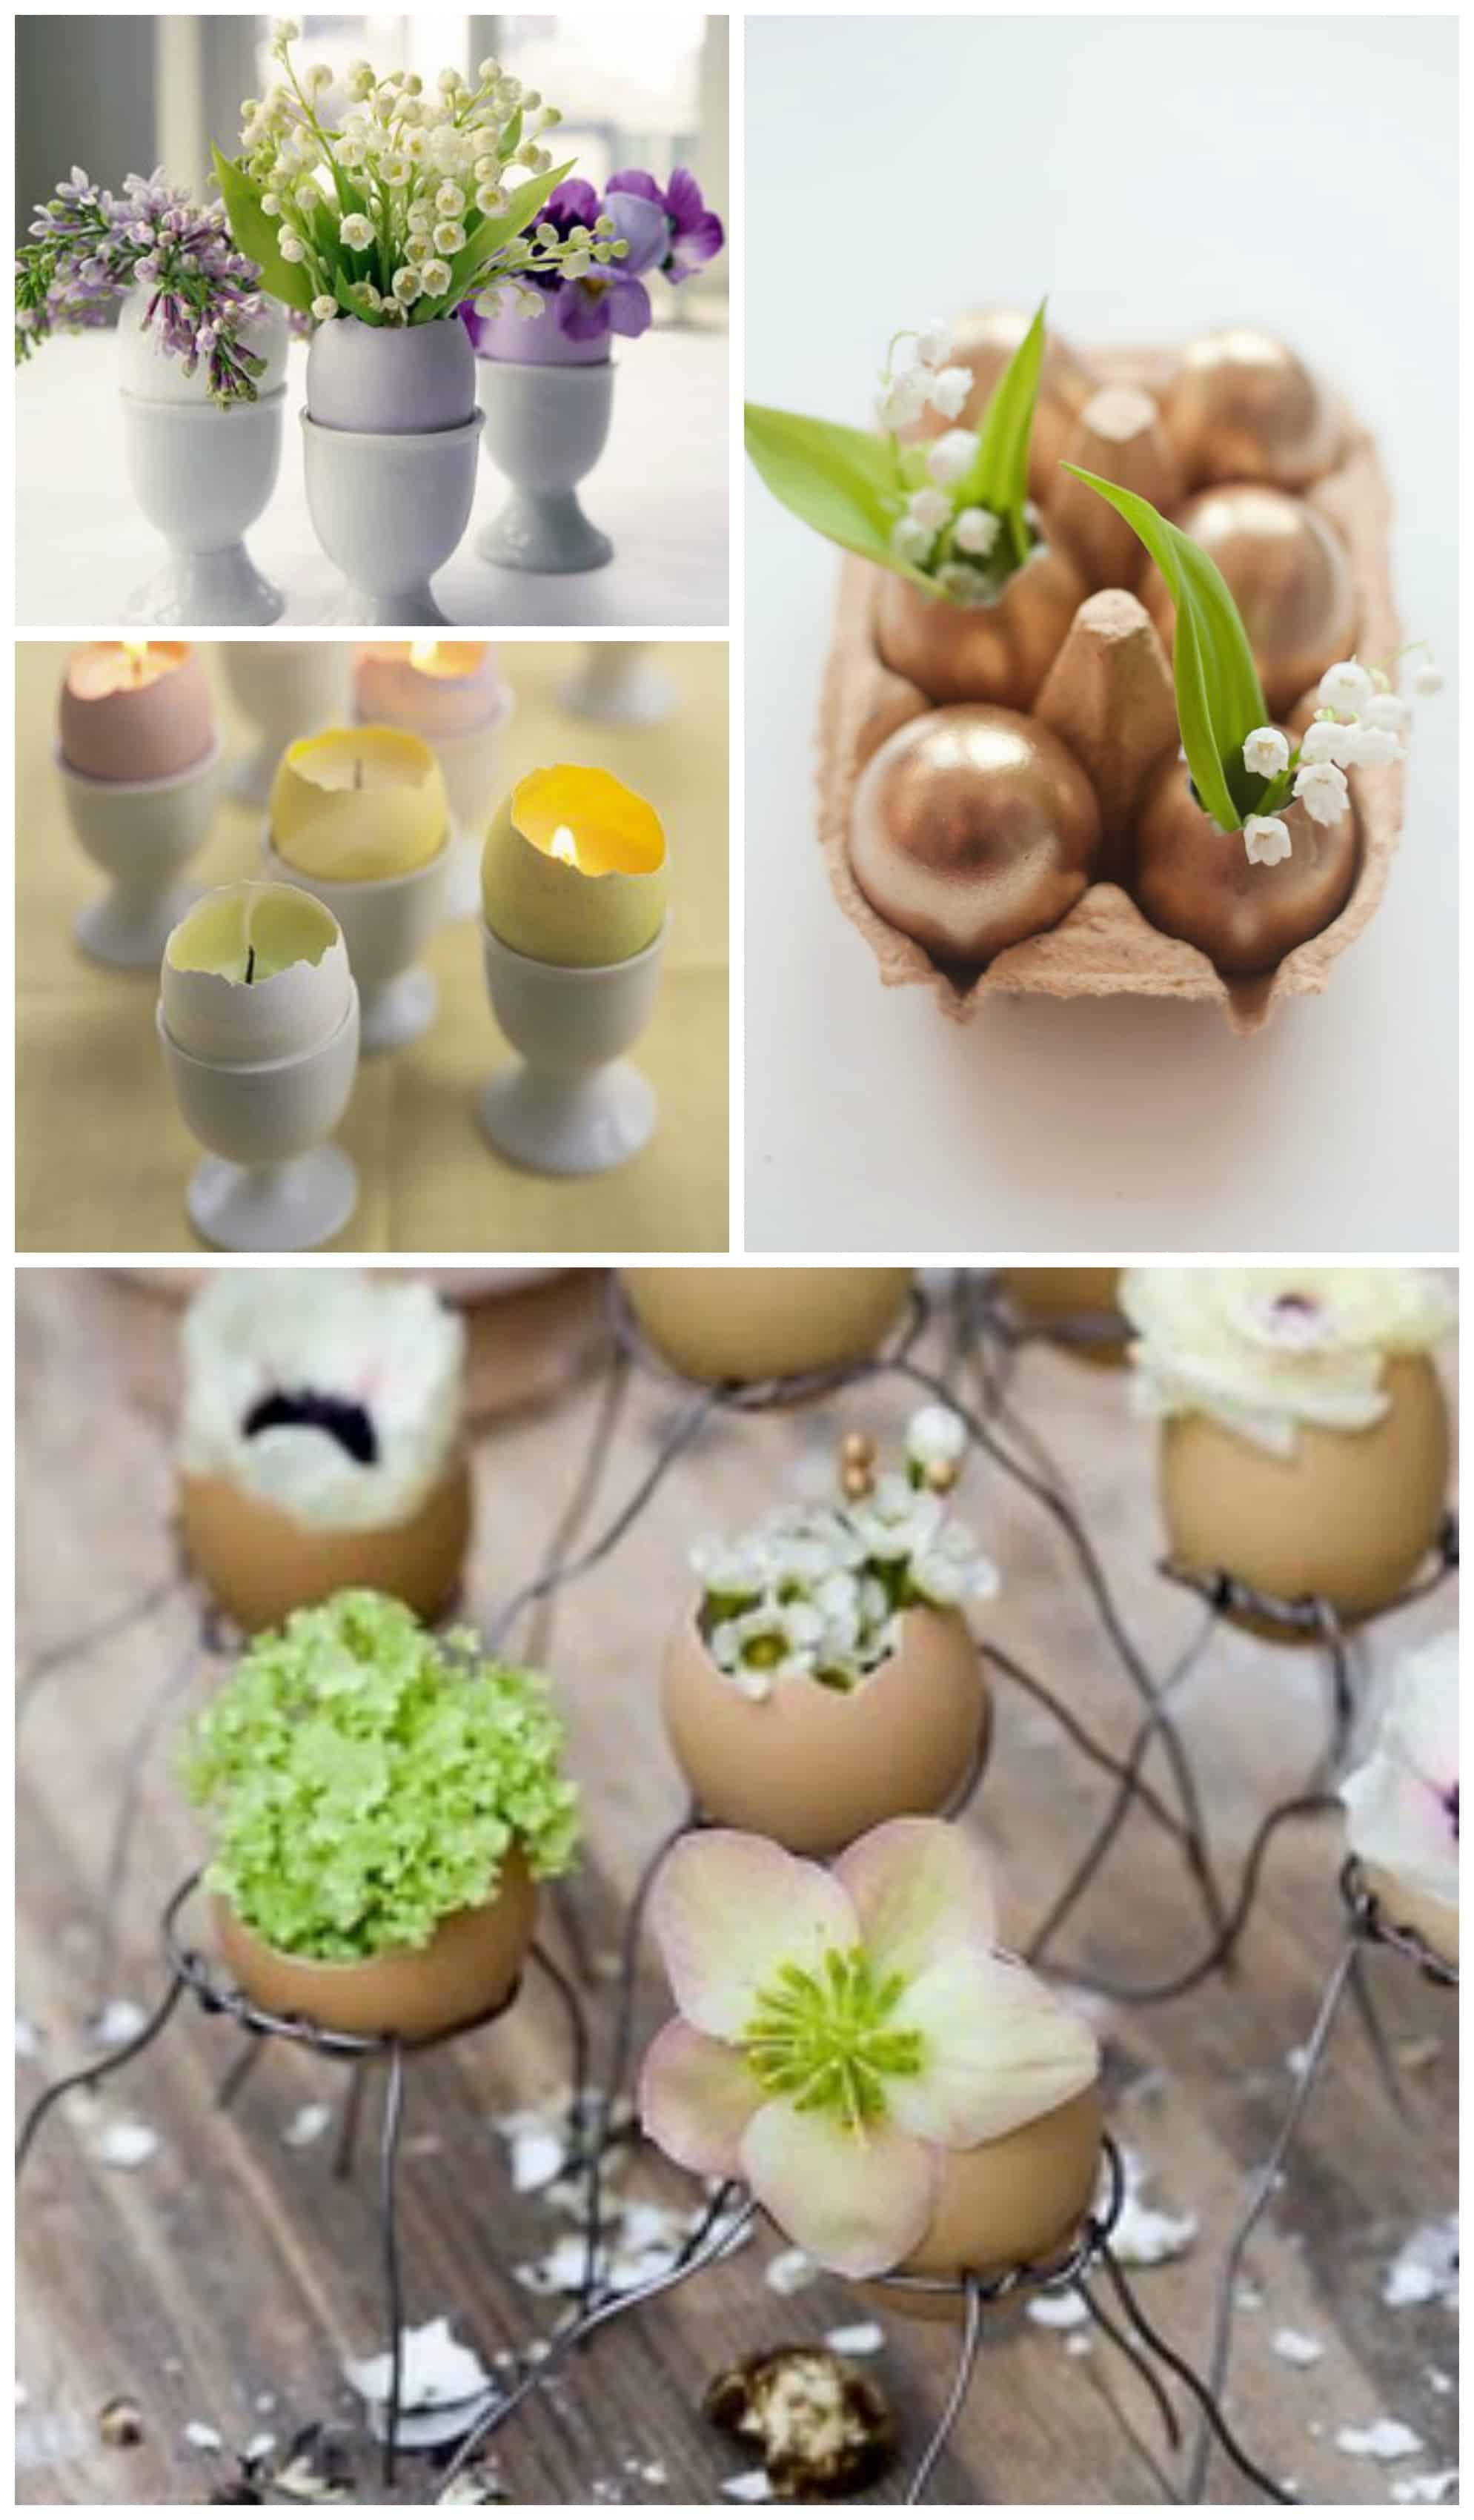 ALTERNATIVE EGGS DIY 10 MODI PER DECORARE LE UOVA DI PASQUA TUTTOFERRAMENTA.IT